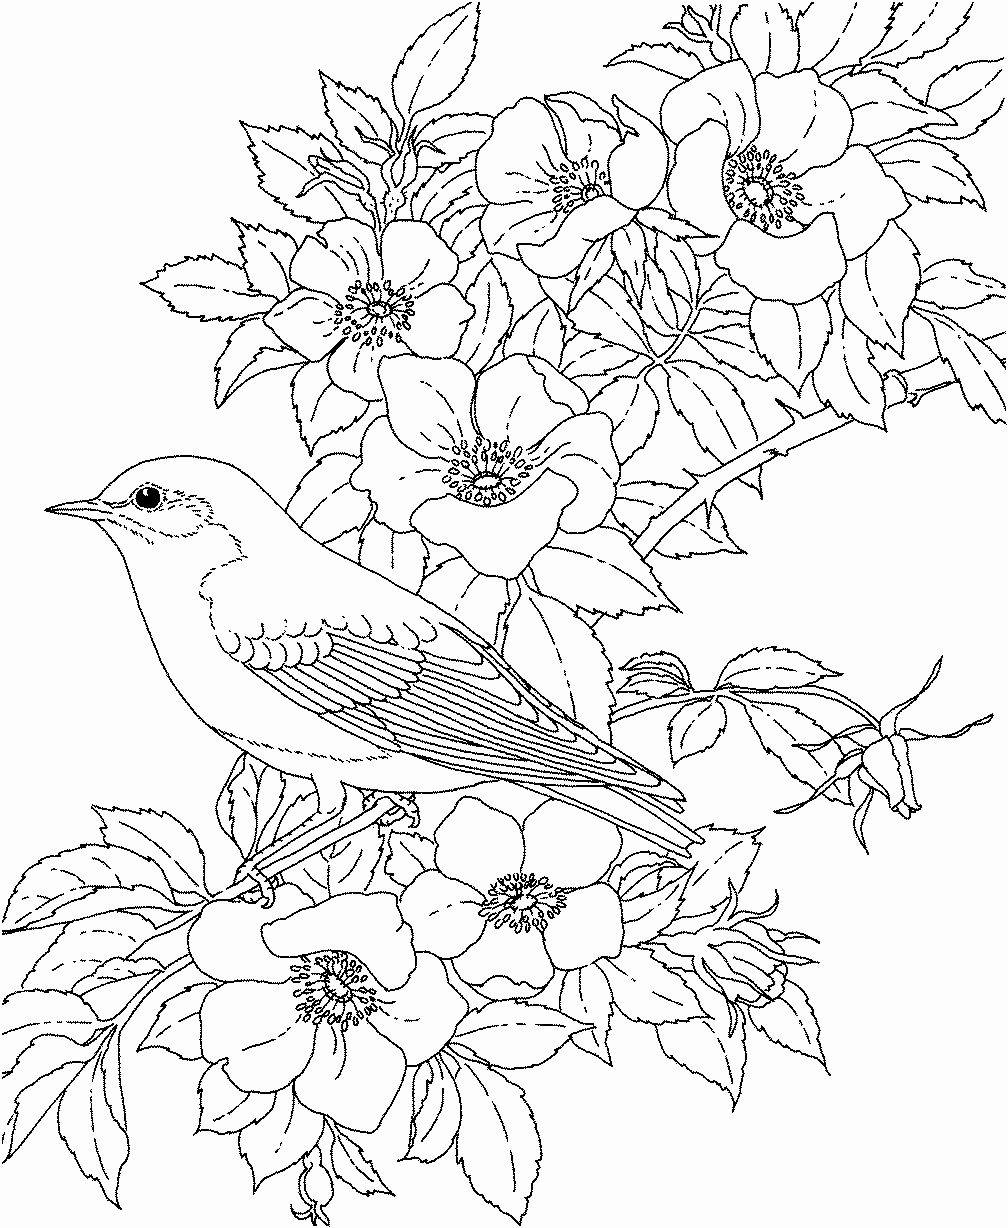 Colouring Flowers Experiment Elegant Coloring Pages Birds And Flowers Bird Coloring Pages Animal Coloring Pages Flower Coloring Pages